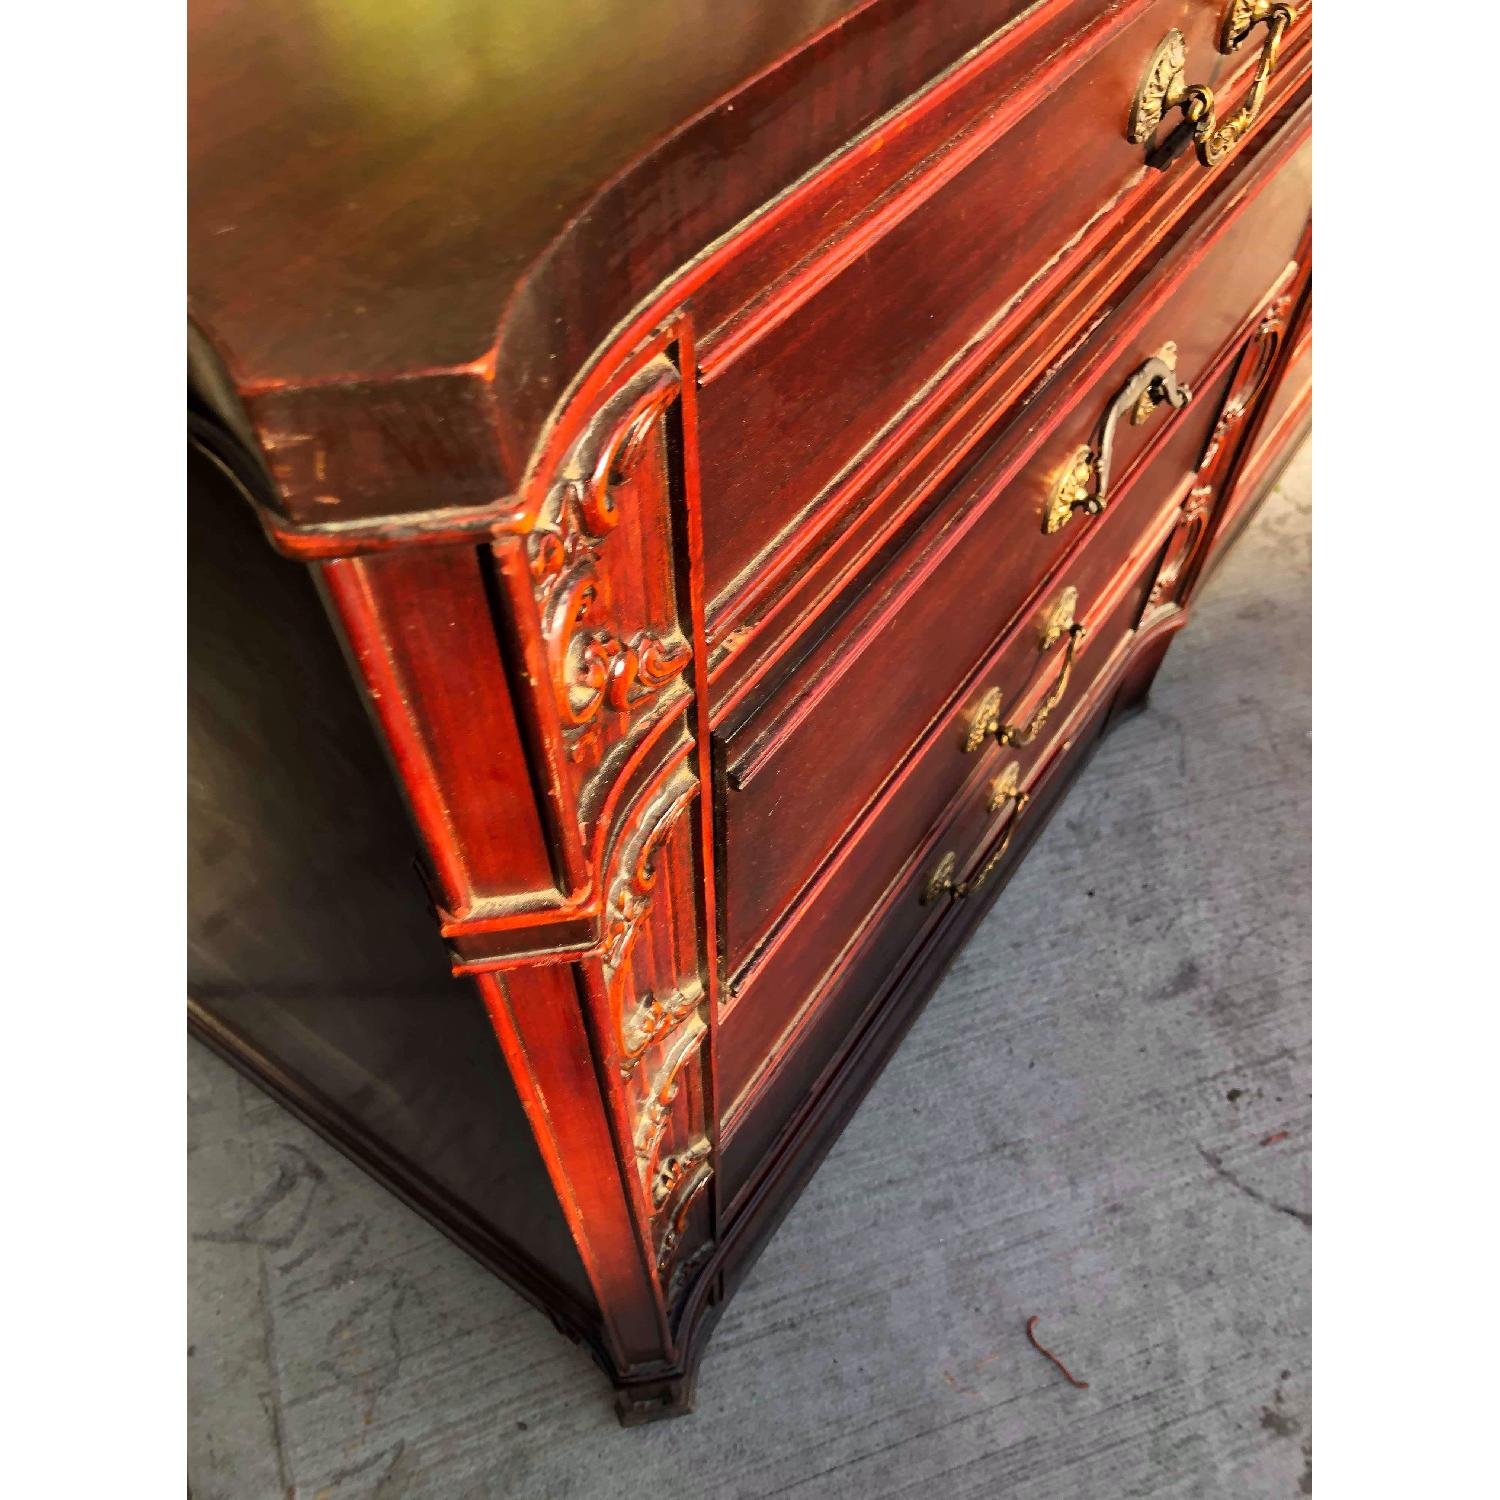 Antique 1930s Cherry Wood Leather Front 8 Drawer Dresser - image-11